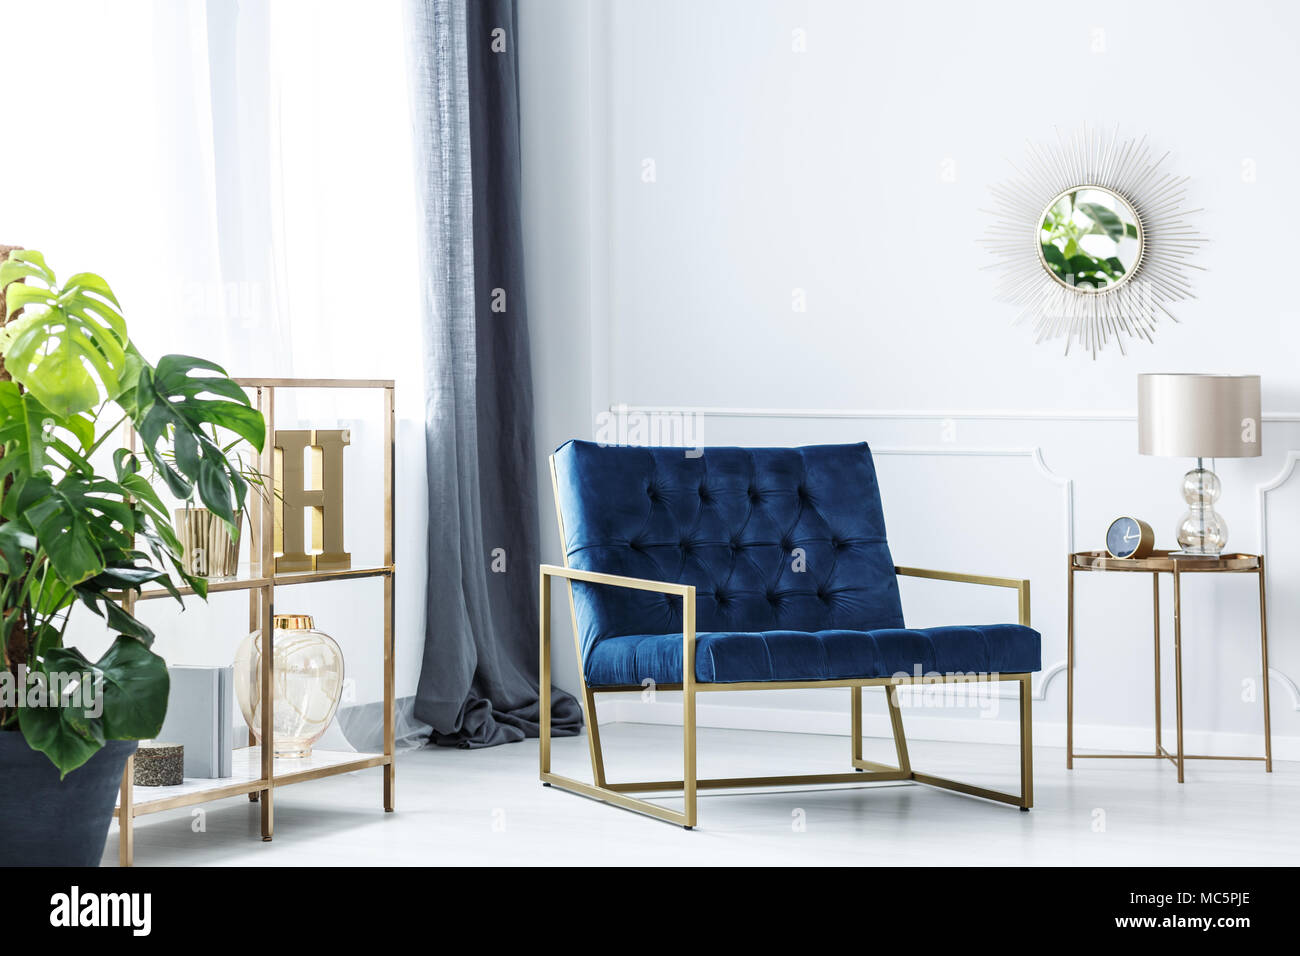 navy blue chair standing in white room interior with golden